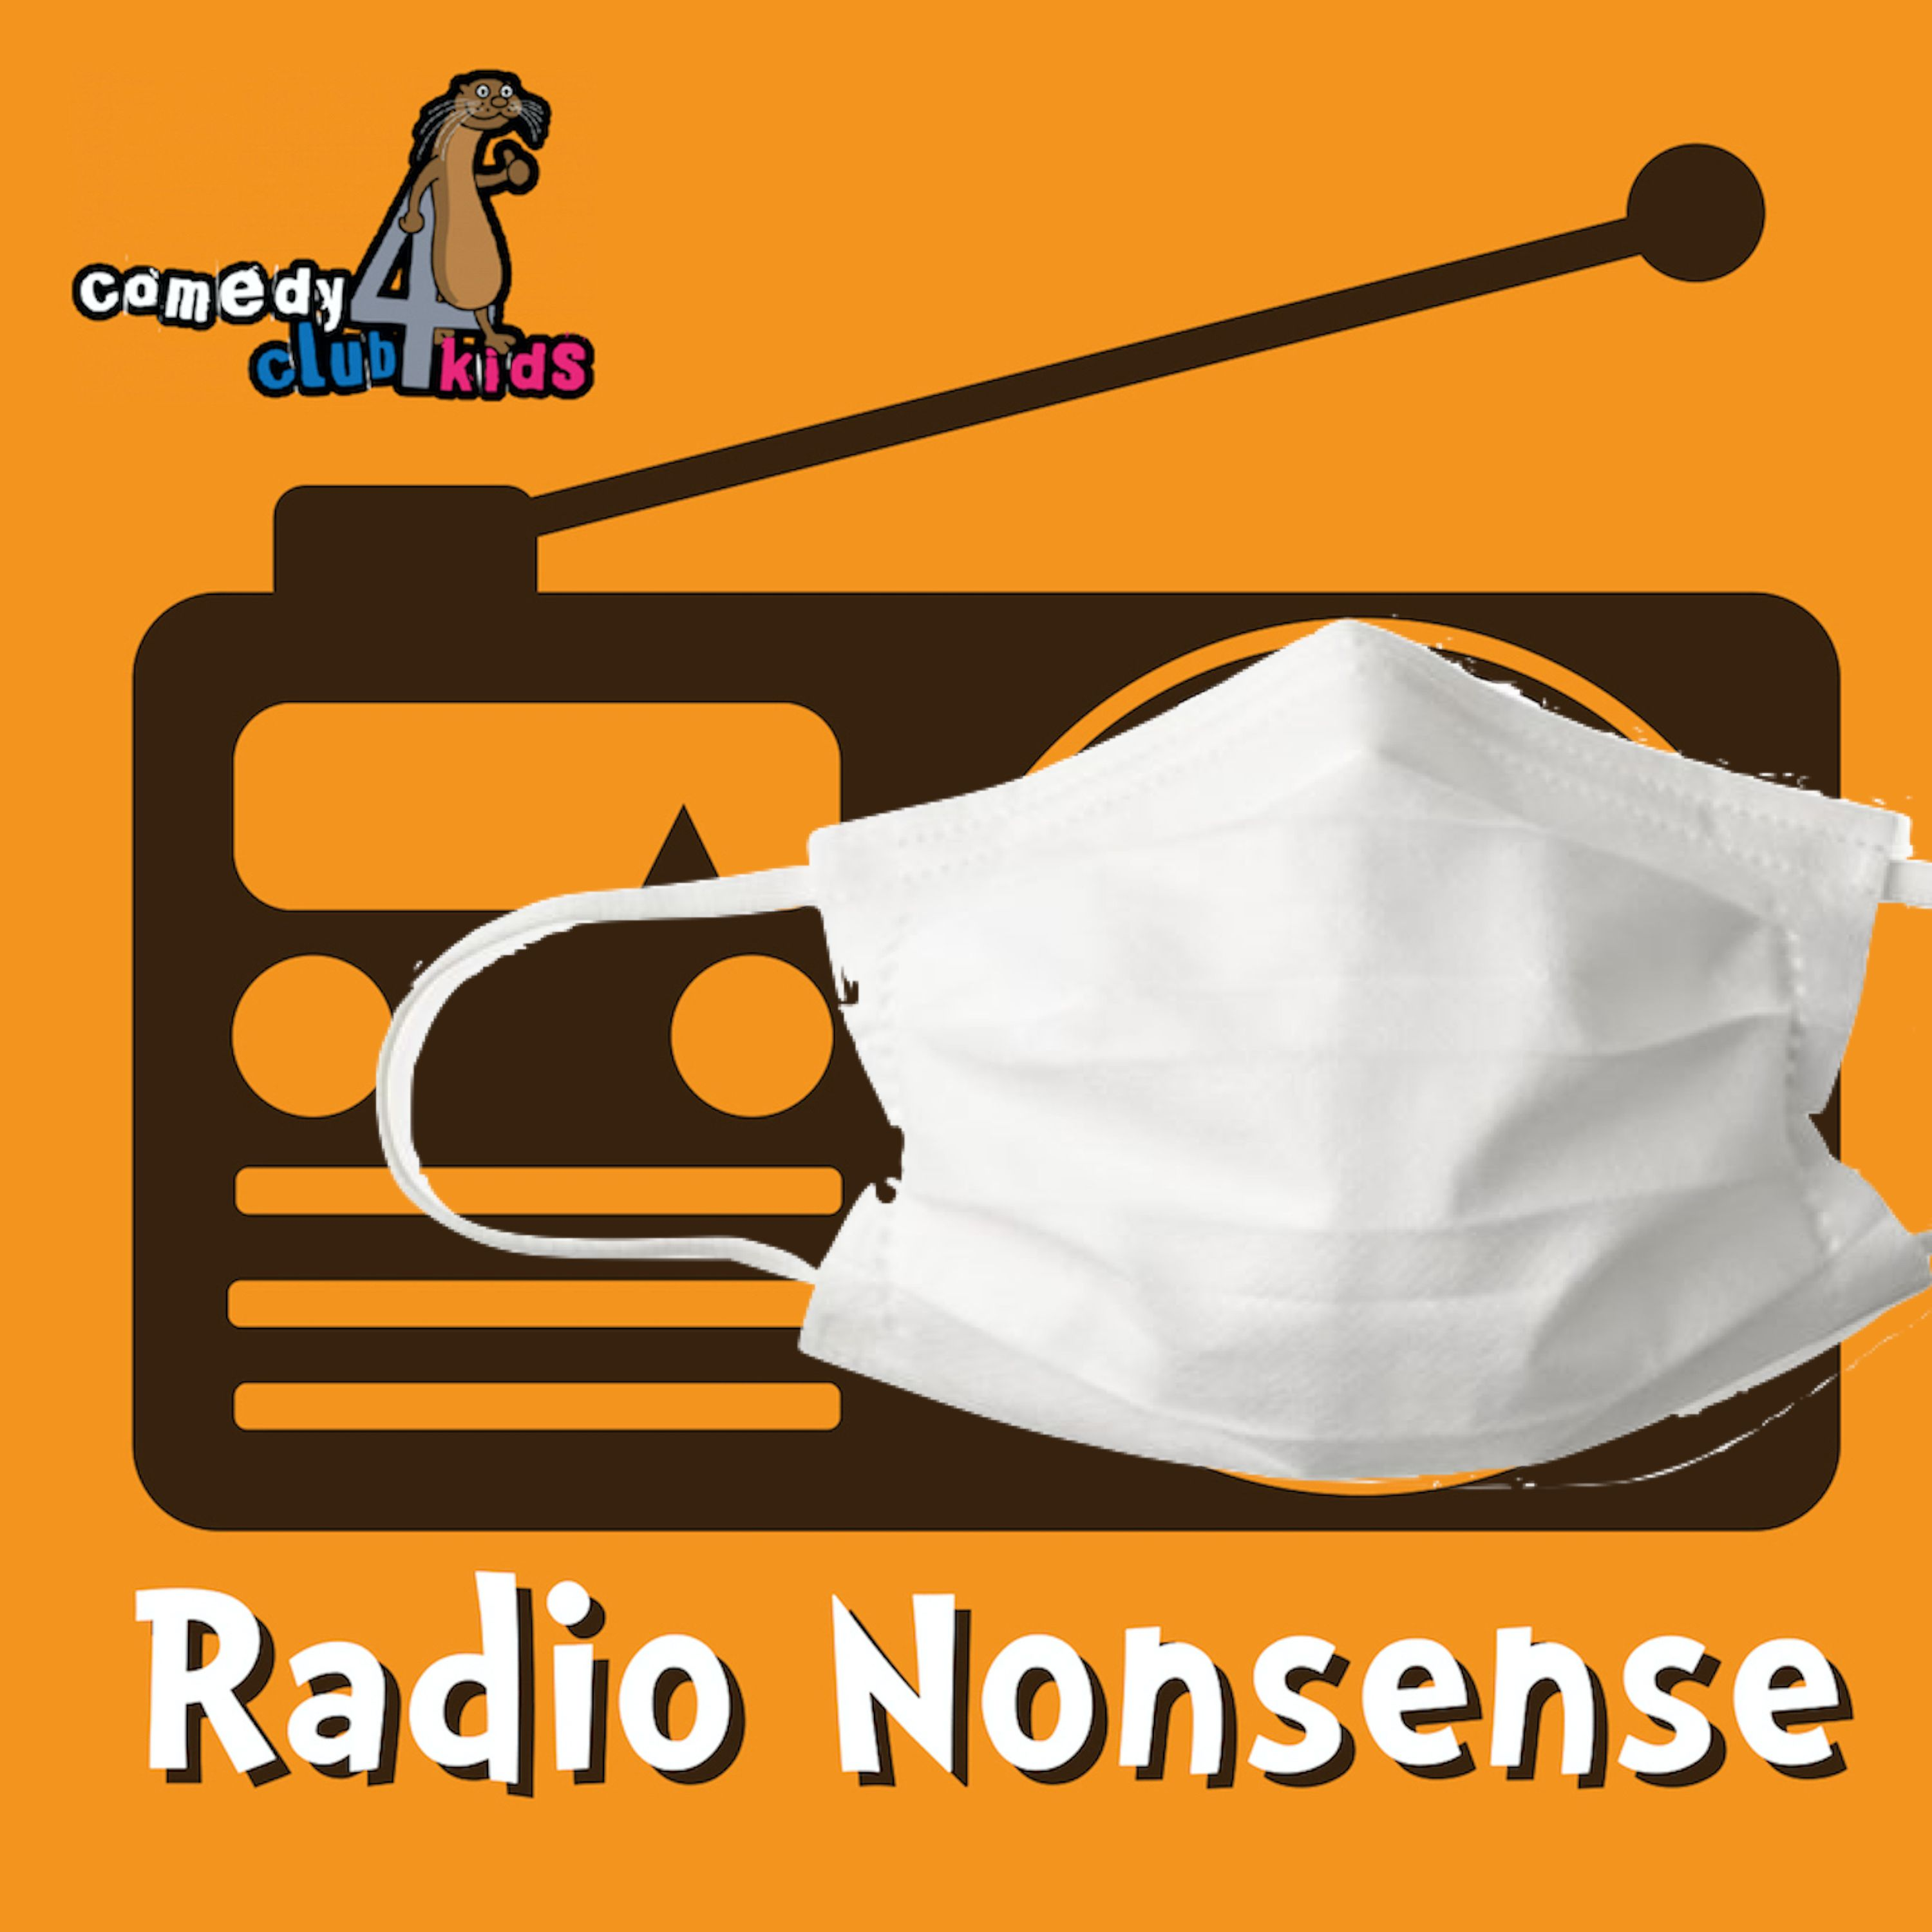 Schools Closed? Radio Nonsense is here to help!